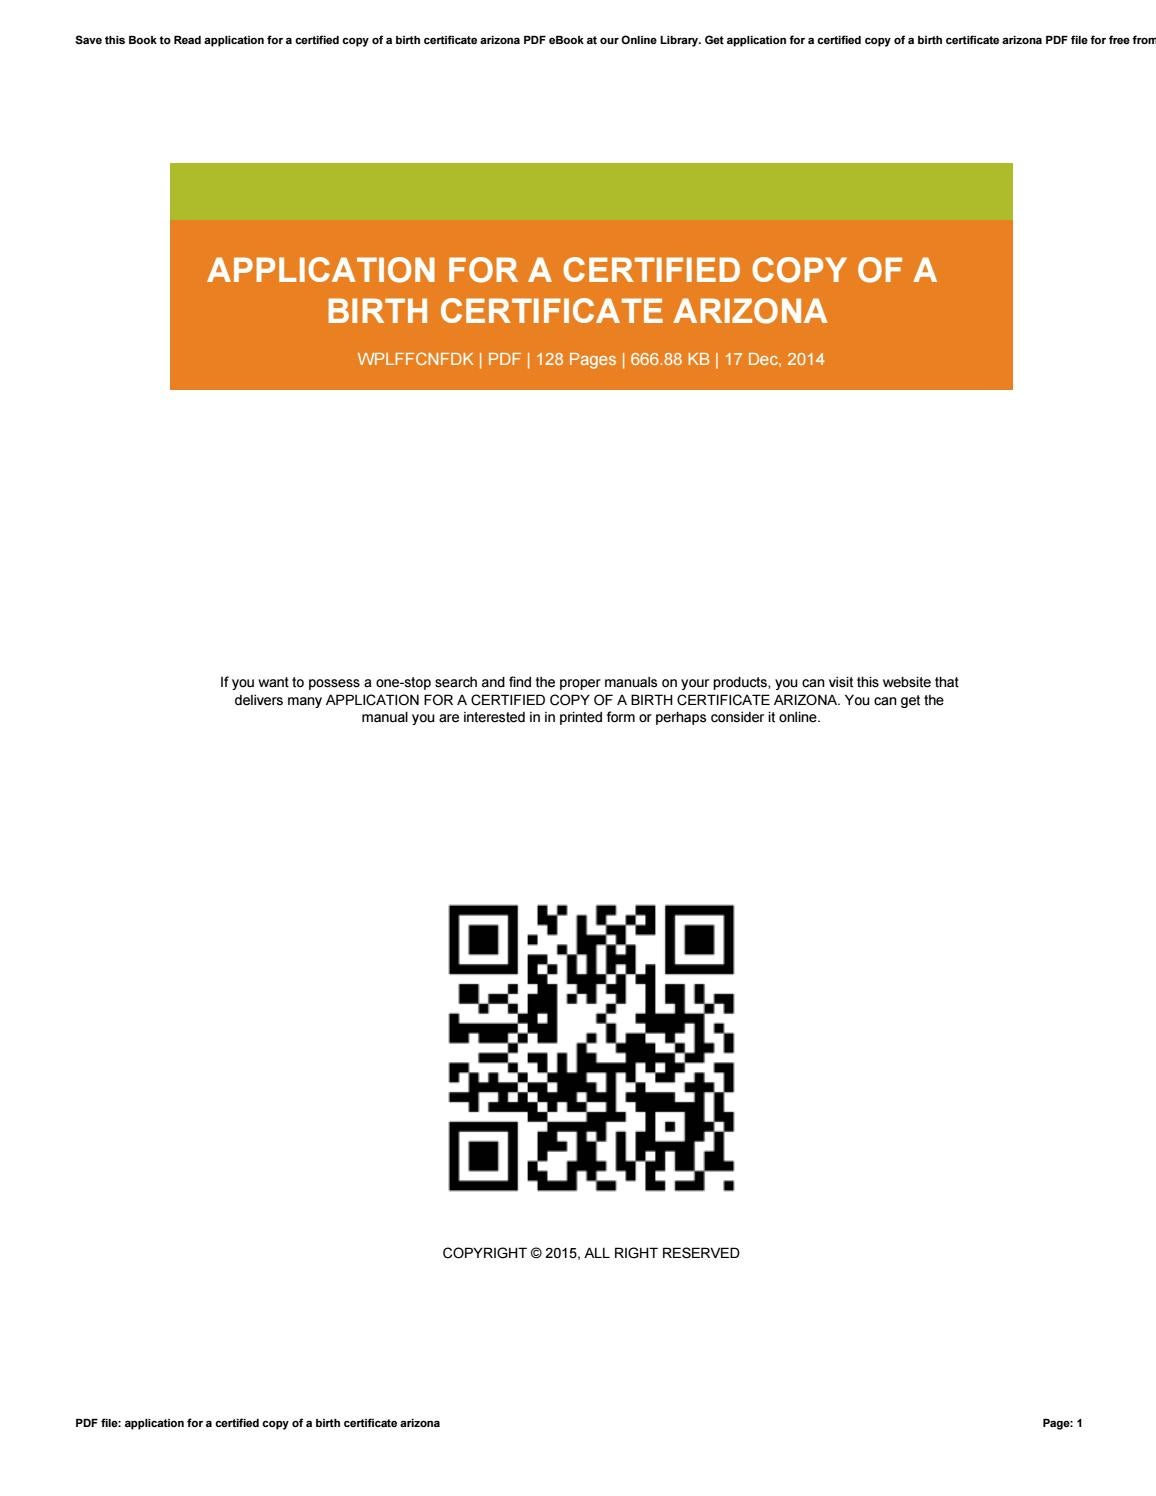 Application For A Certified Copy Of A Birth Certificate Arizona By